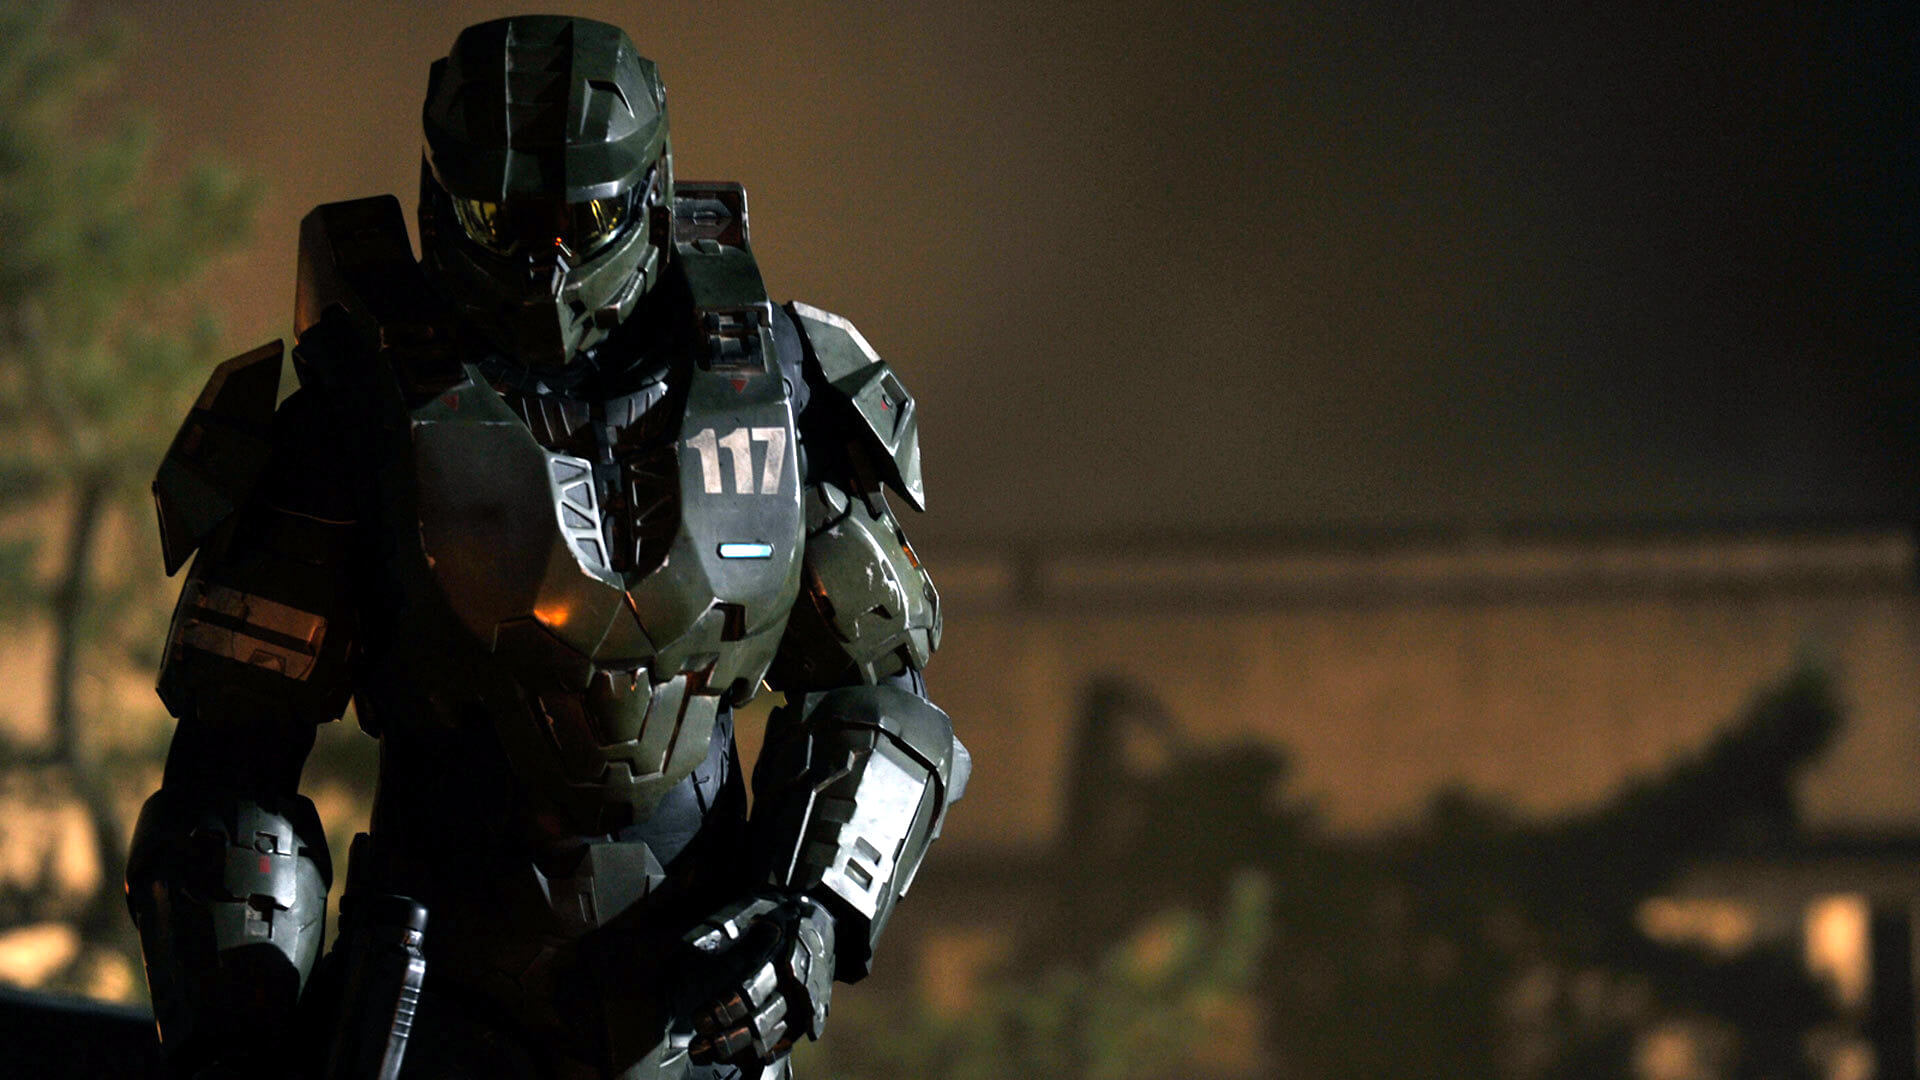 The Live Action Halo TV Series is Still in Development